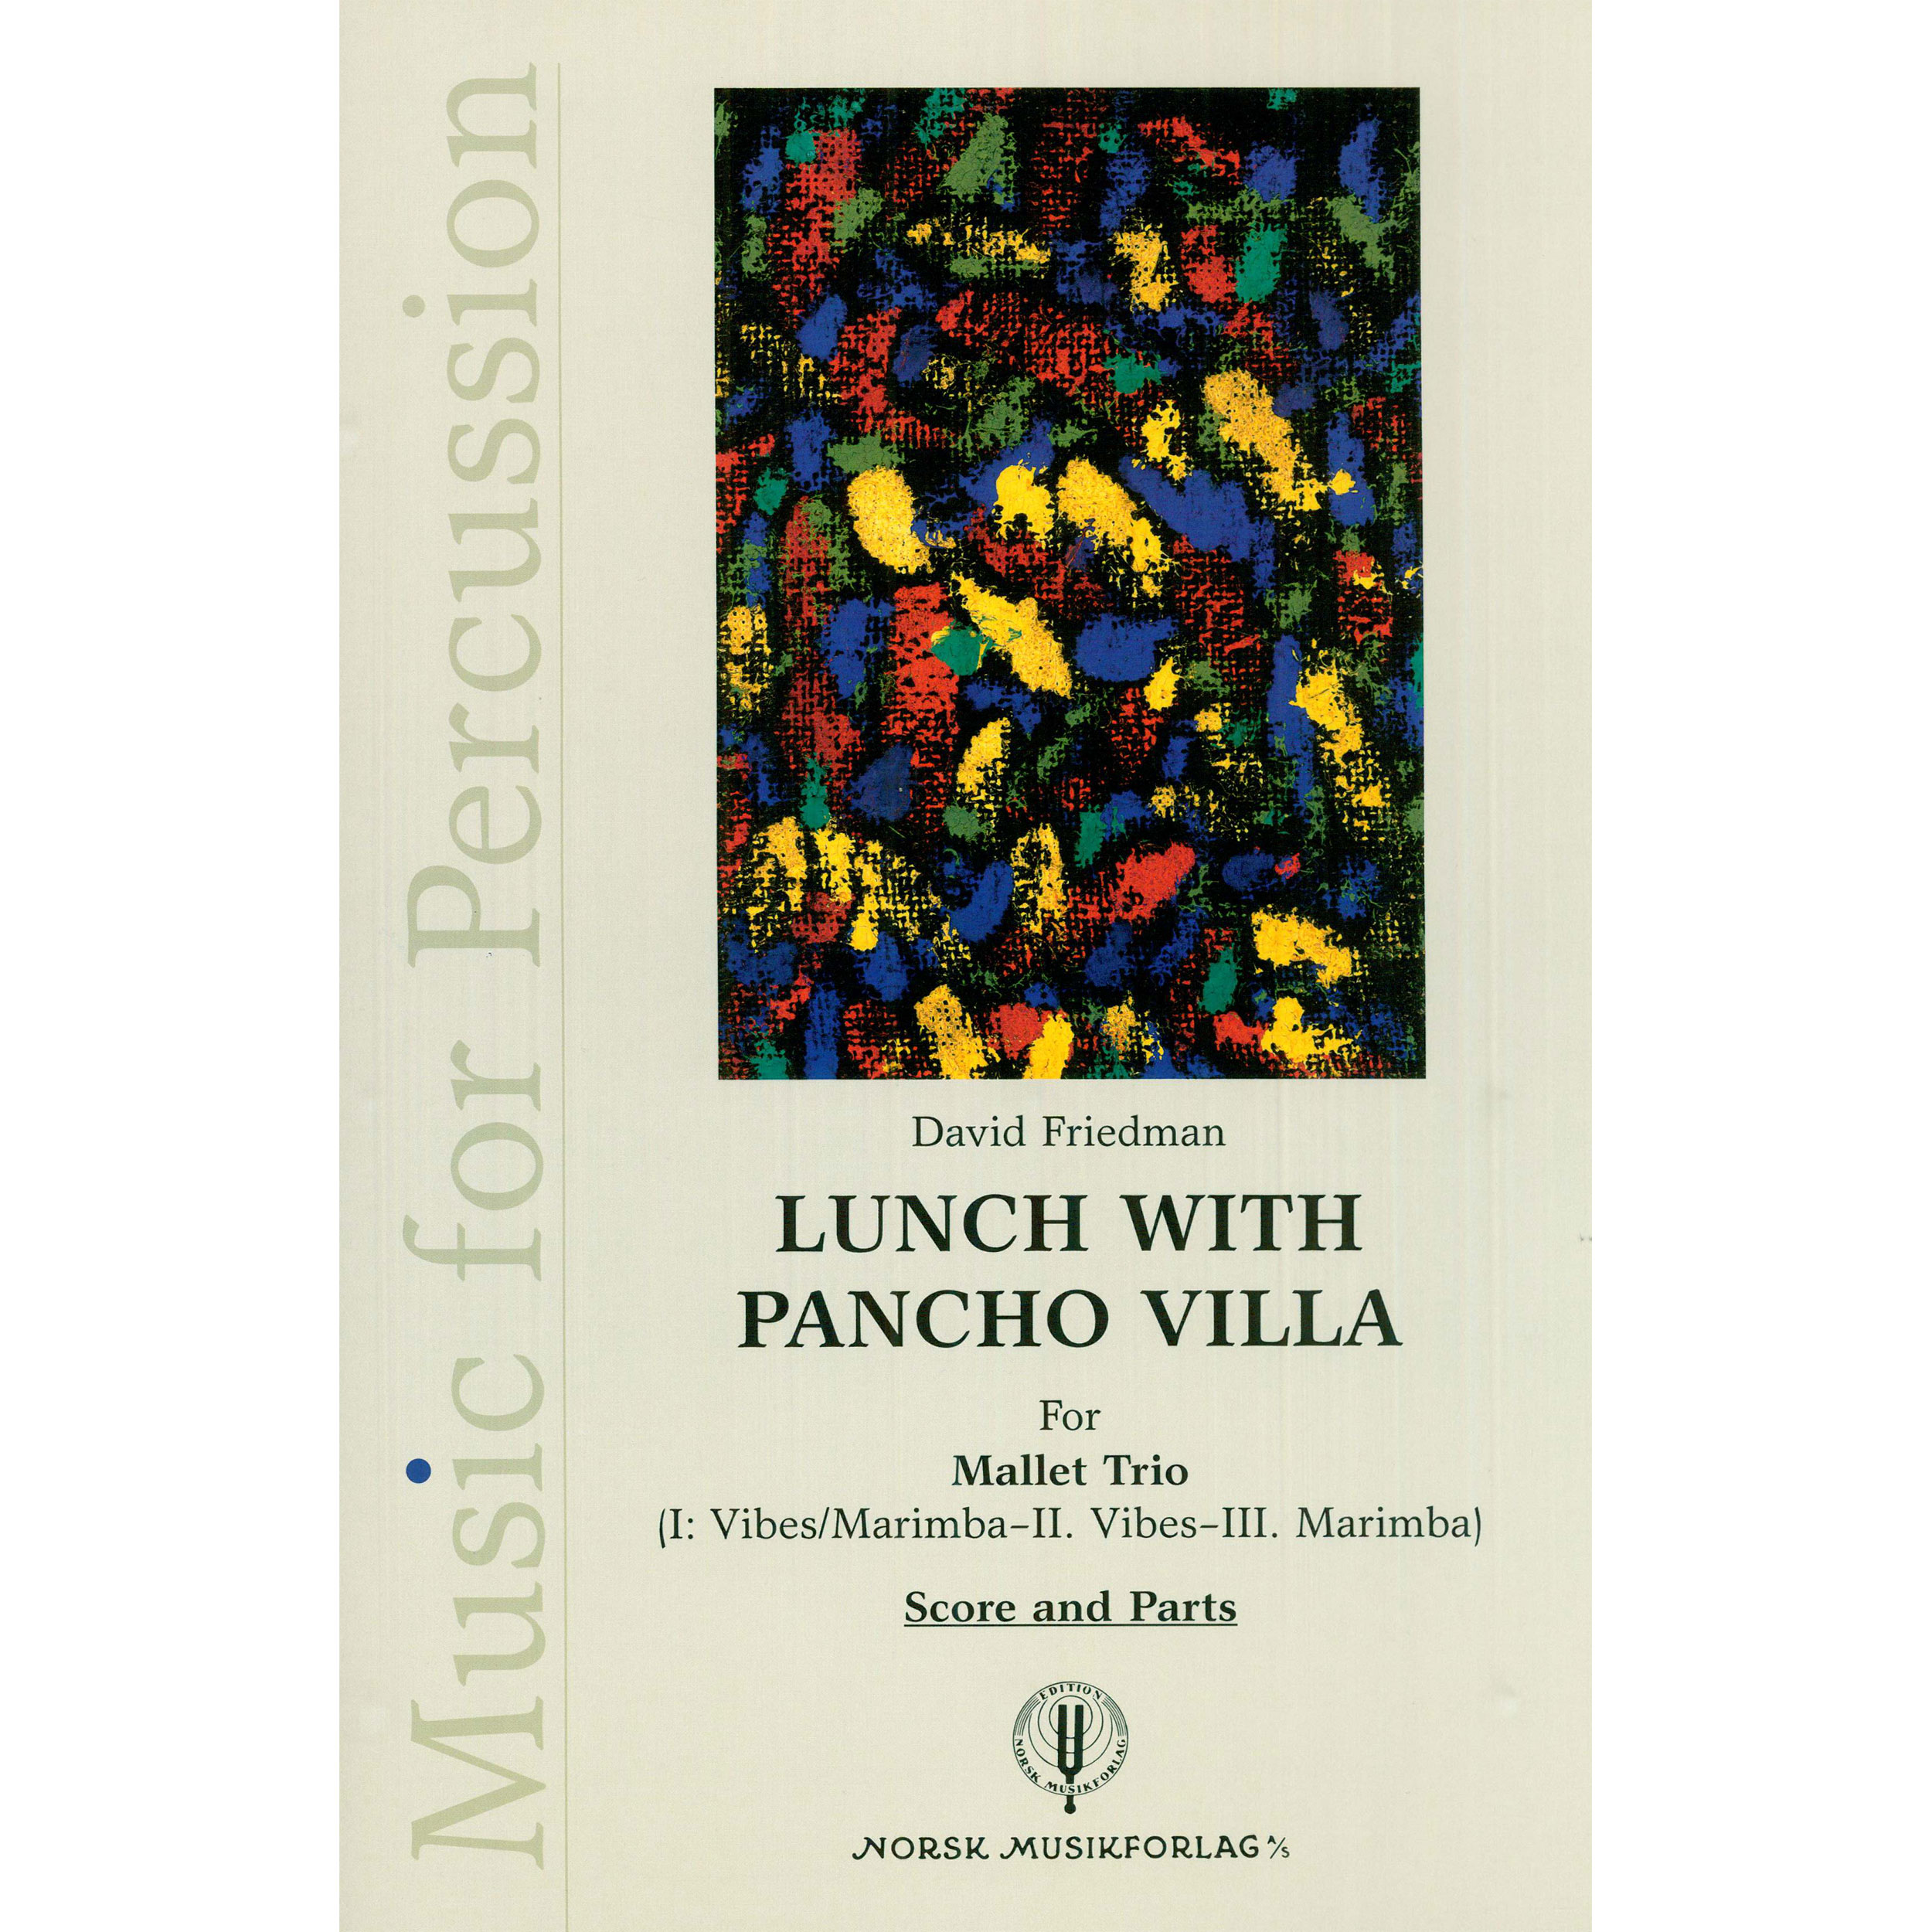 Lunch with Pancho Villa by David Friedman